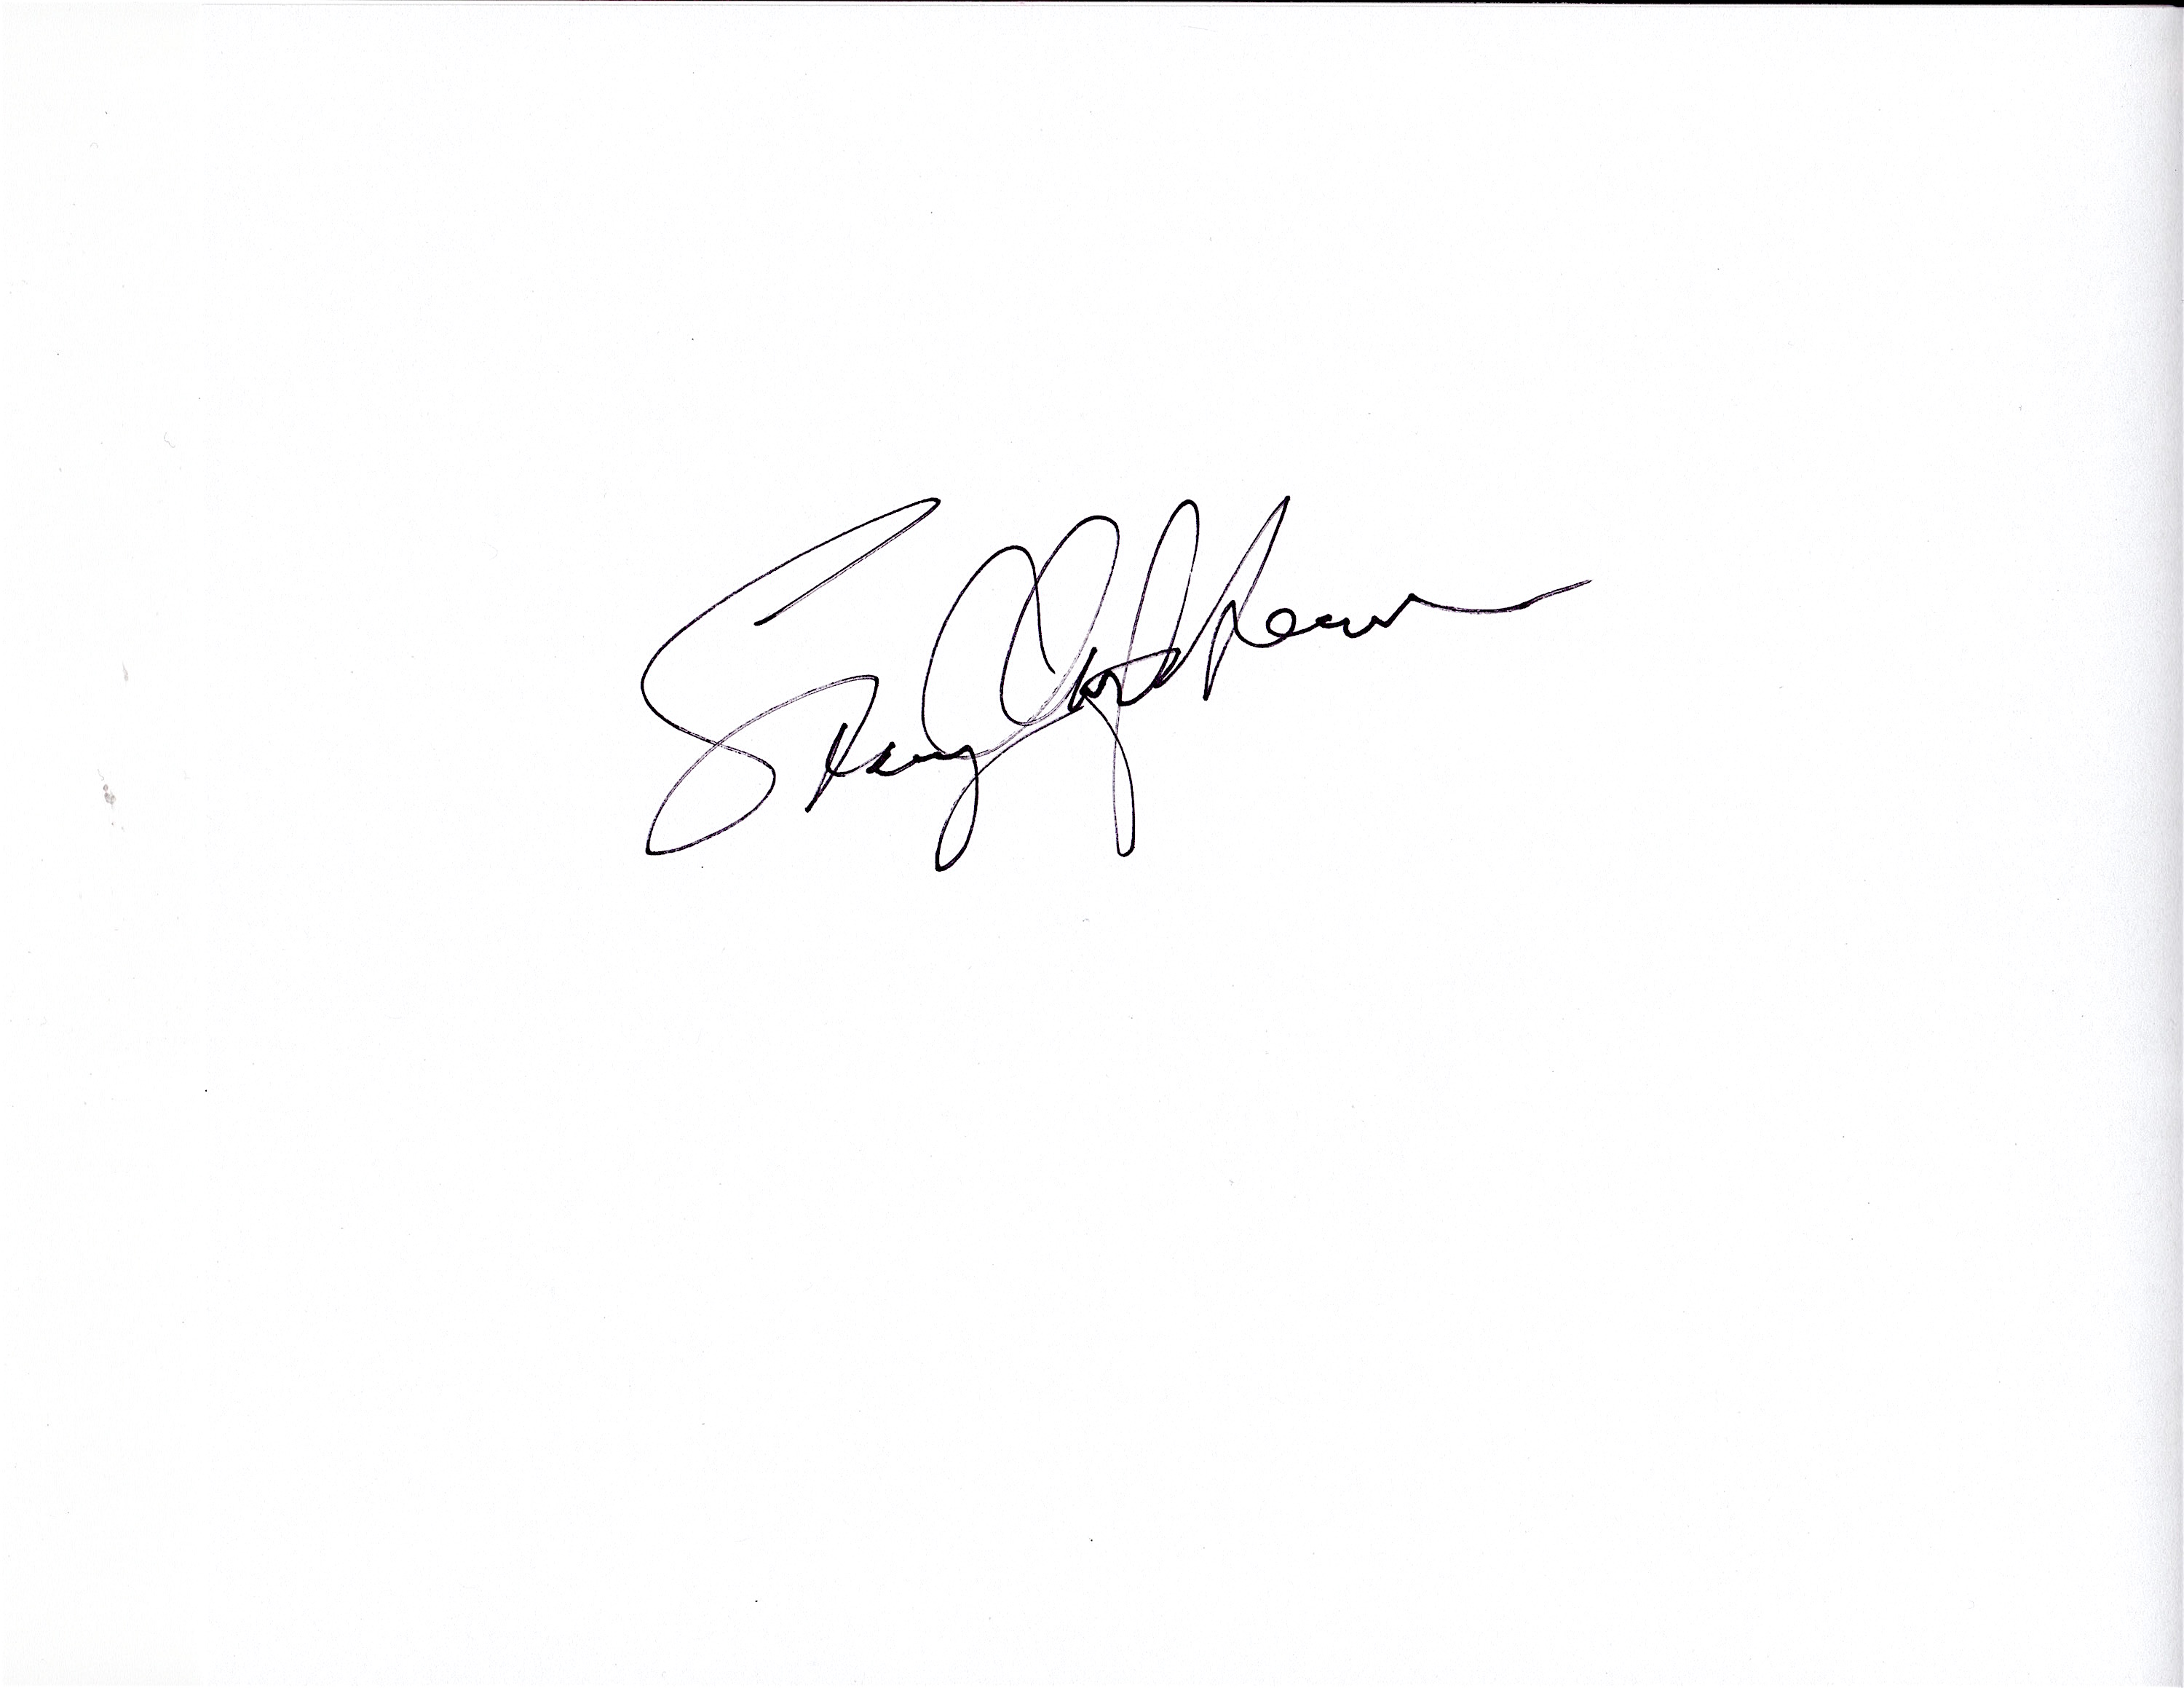 stacey Clarfield Newman's Signature